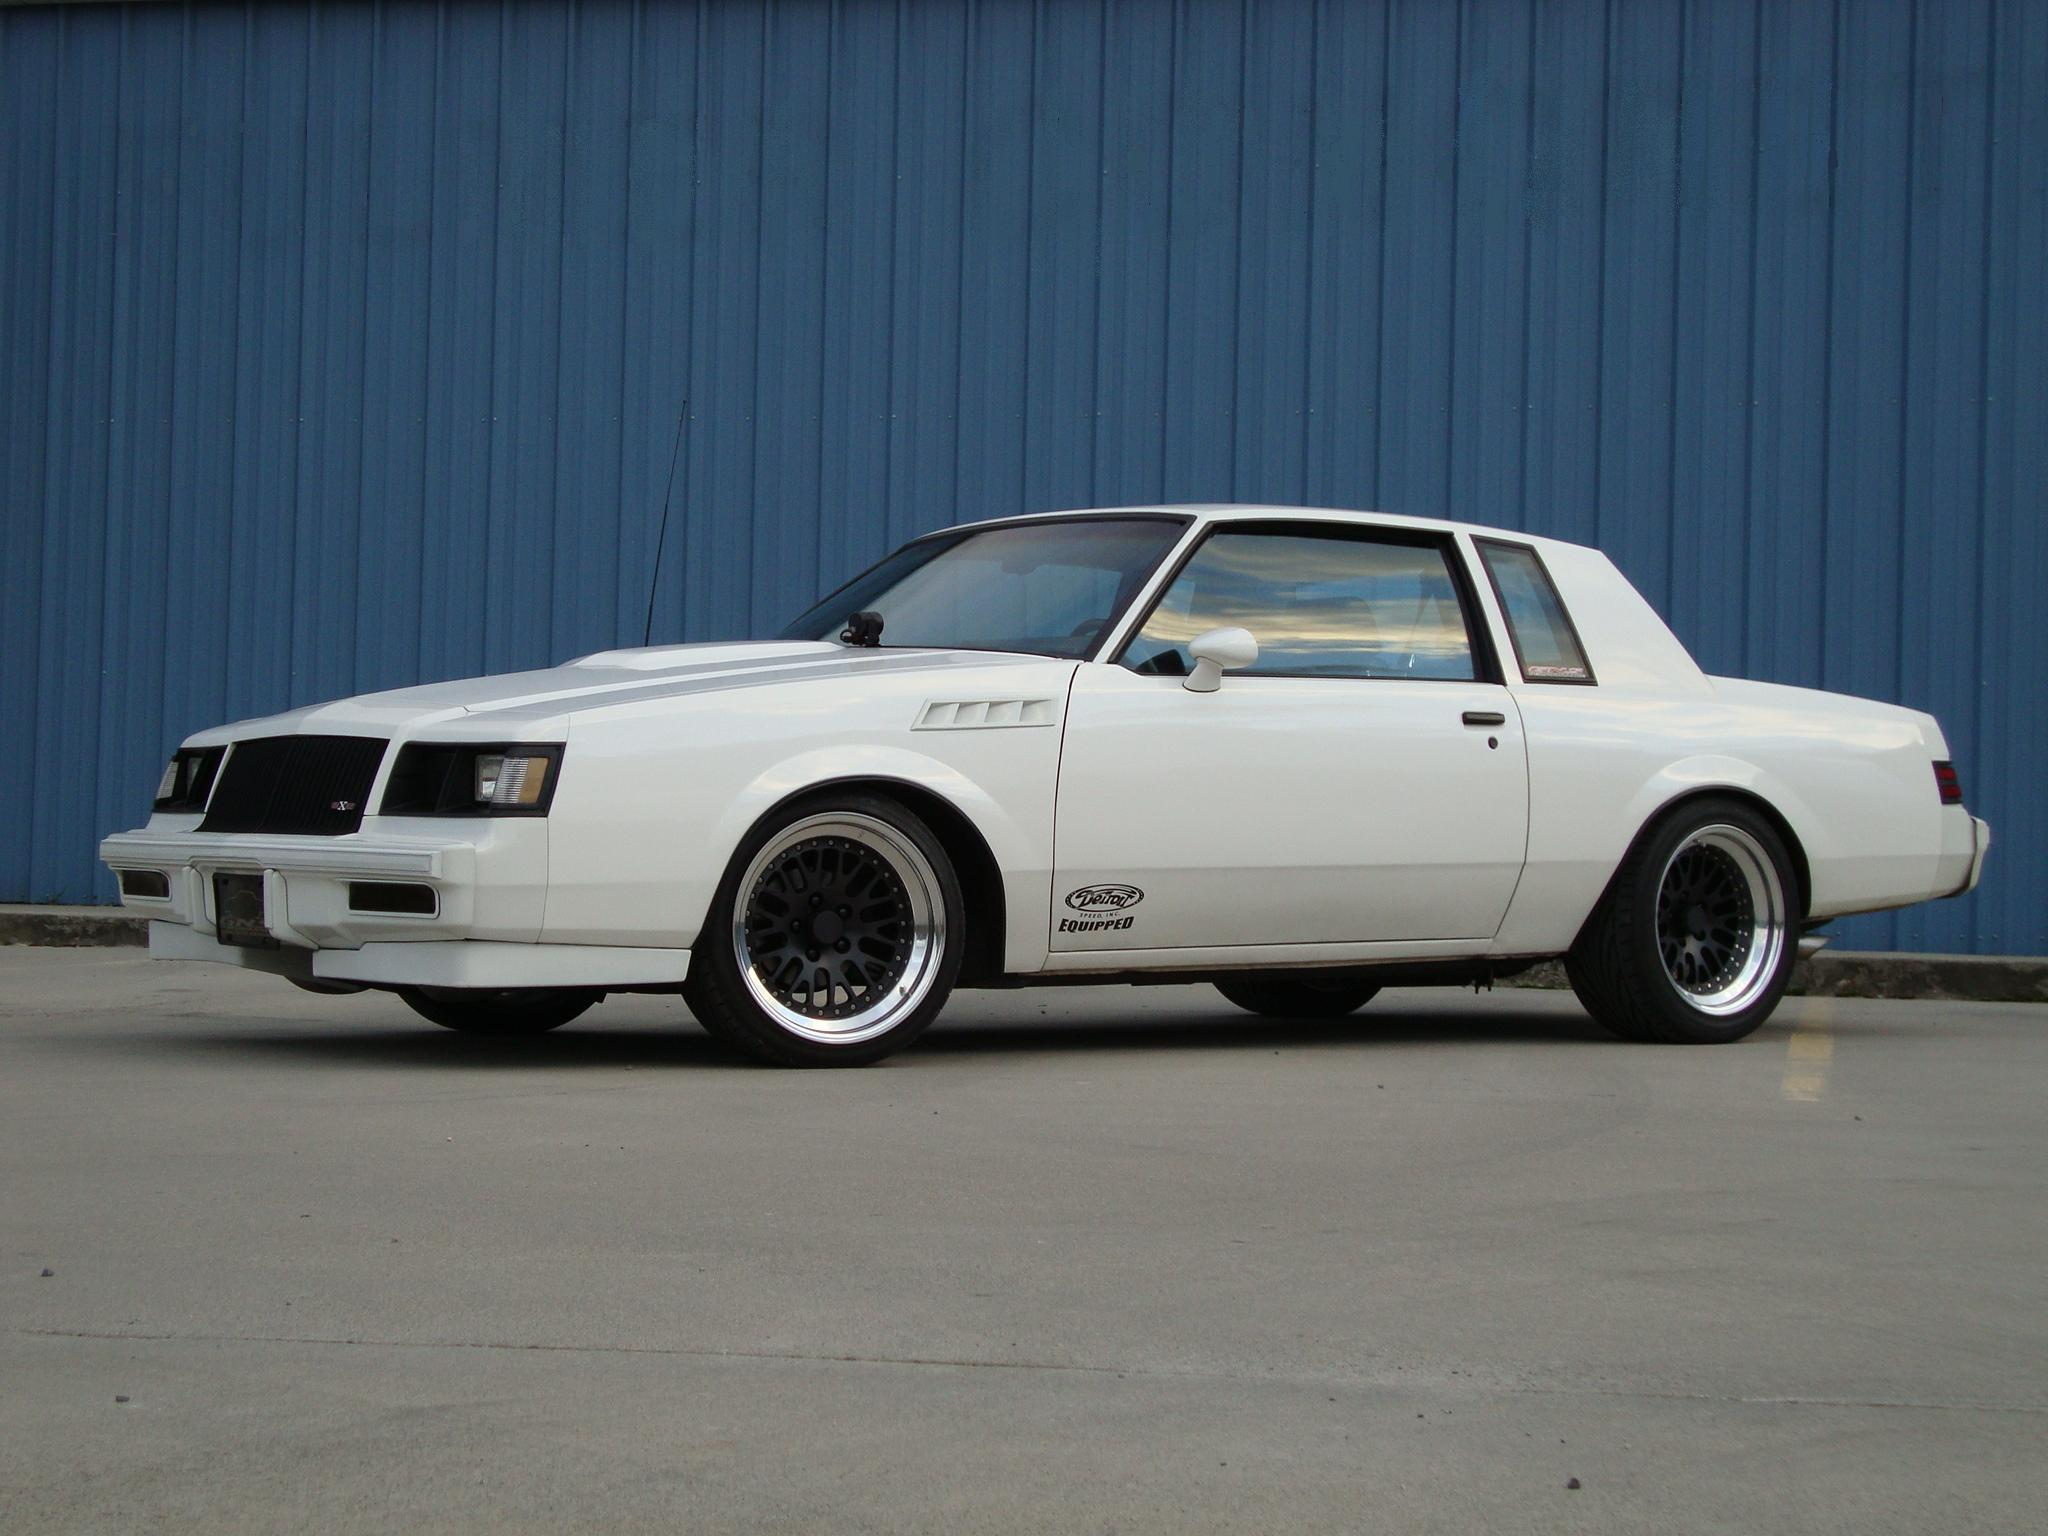 Xxxturbo6 1986 Buick Regal Specs Photos Modification